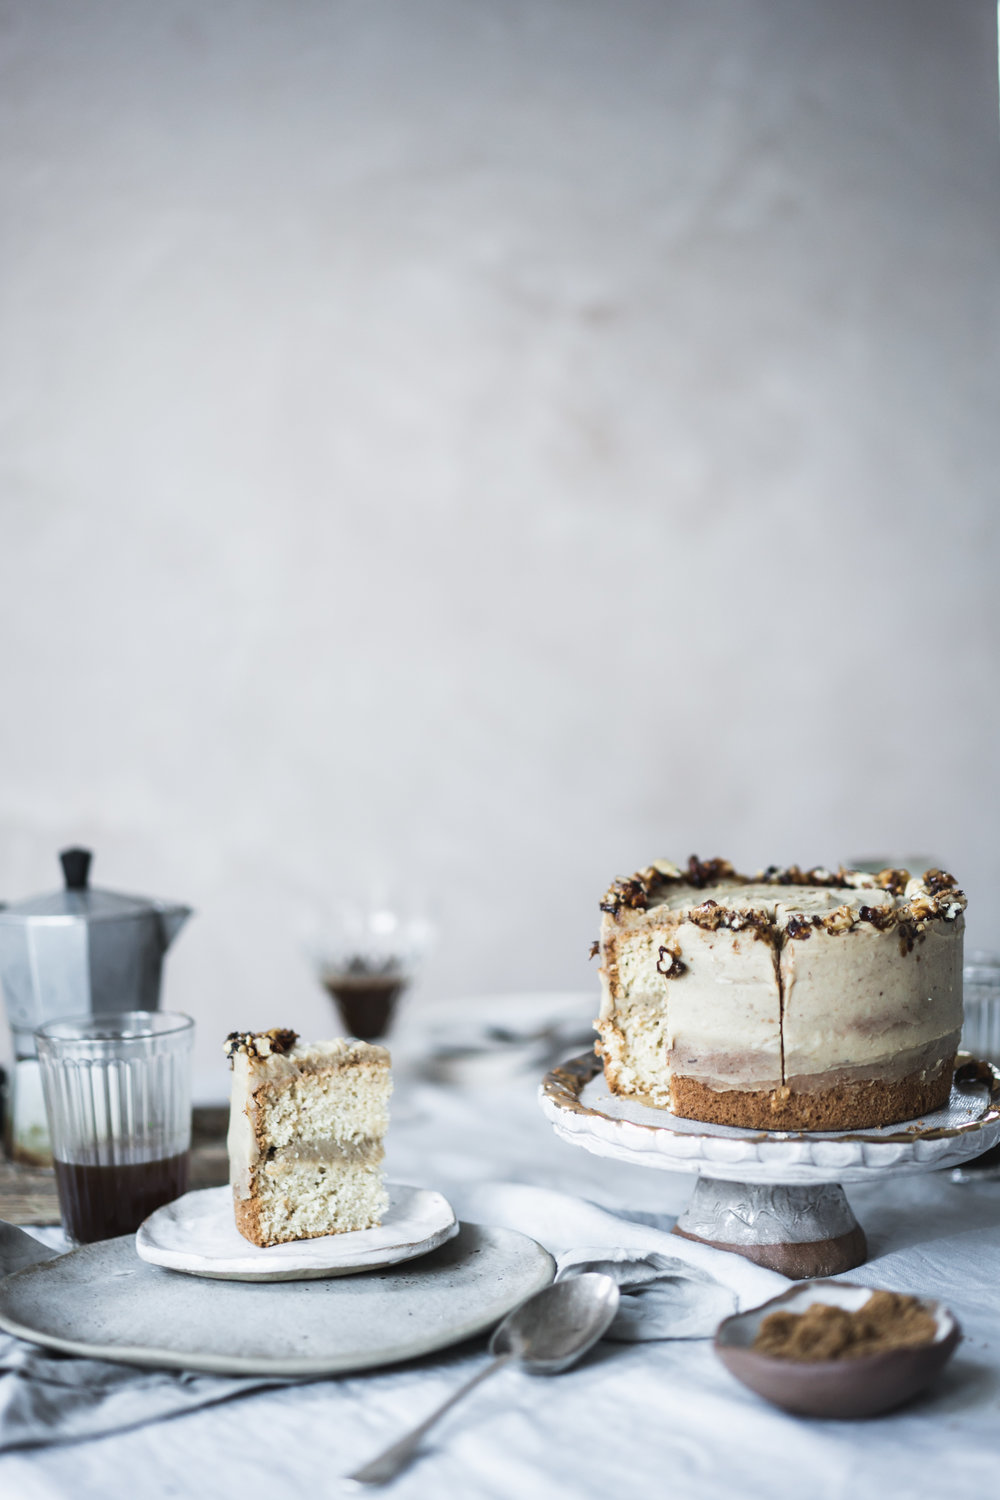 Cake by  Silvia Bifaro  - Photography by  Catia Lemmi